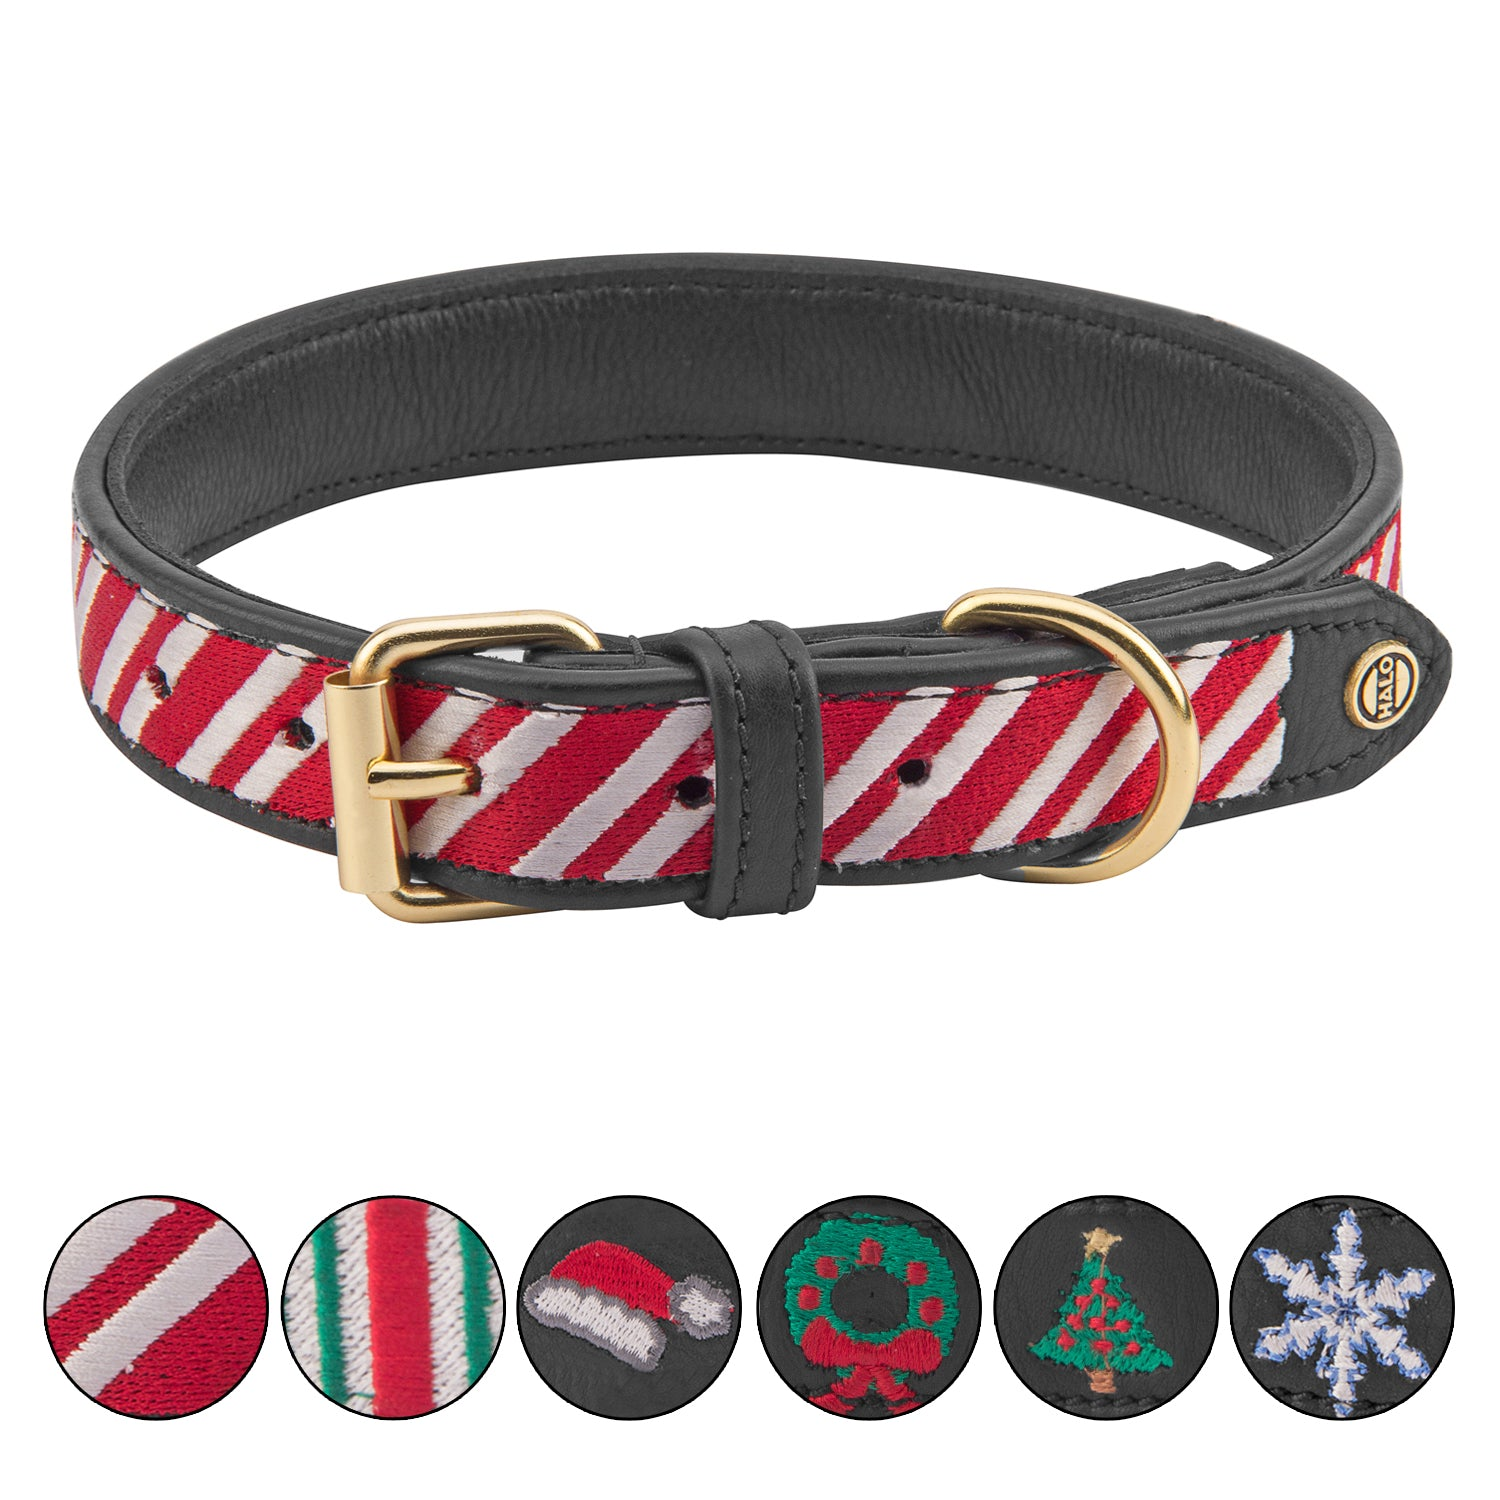 Halo Dog Collar - Leather with Candy Cane Embroidery_1